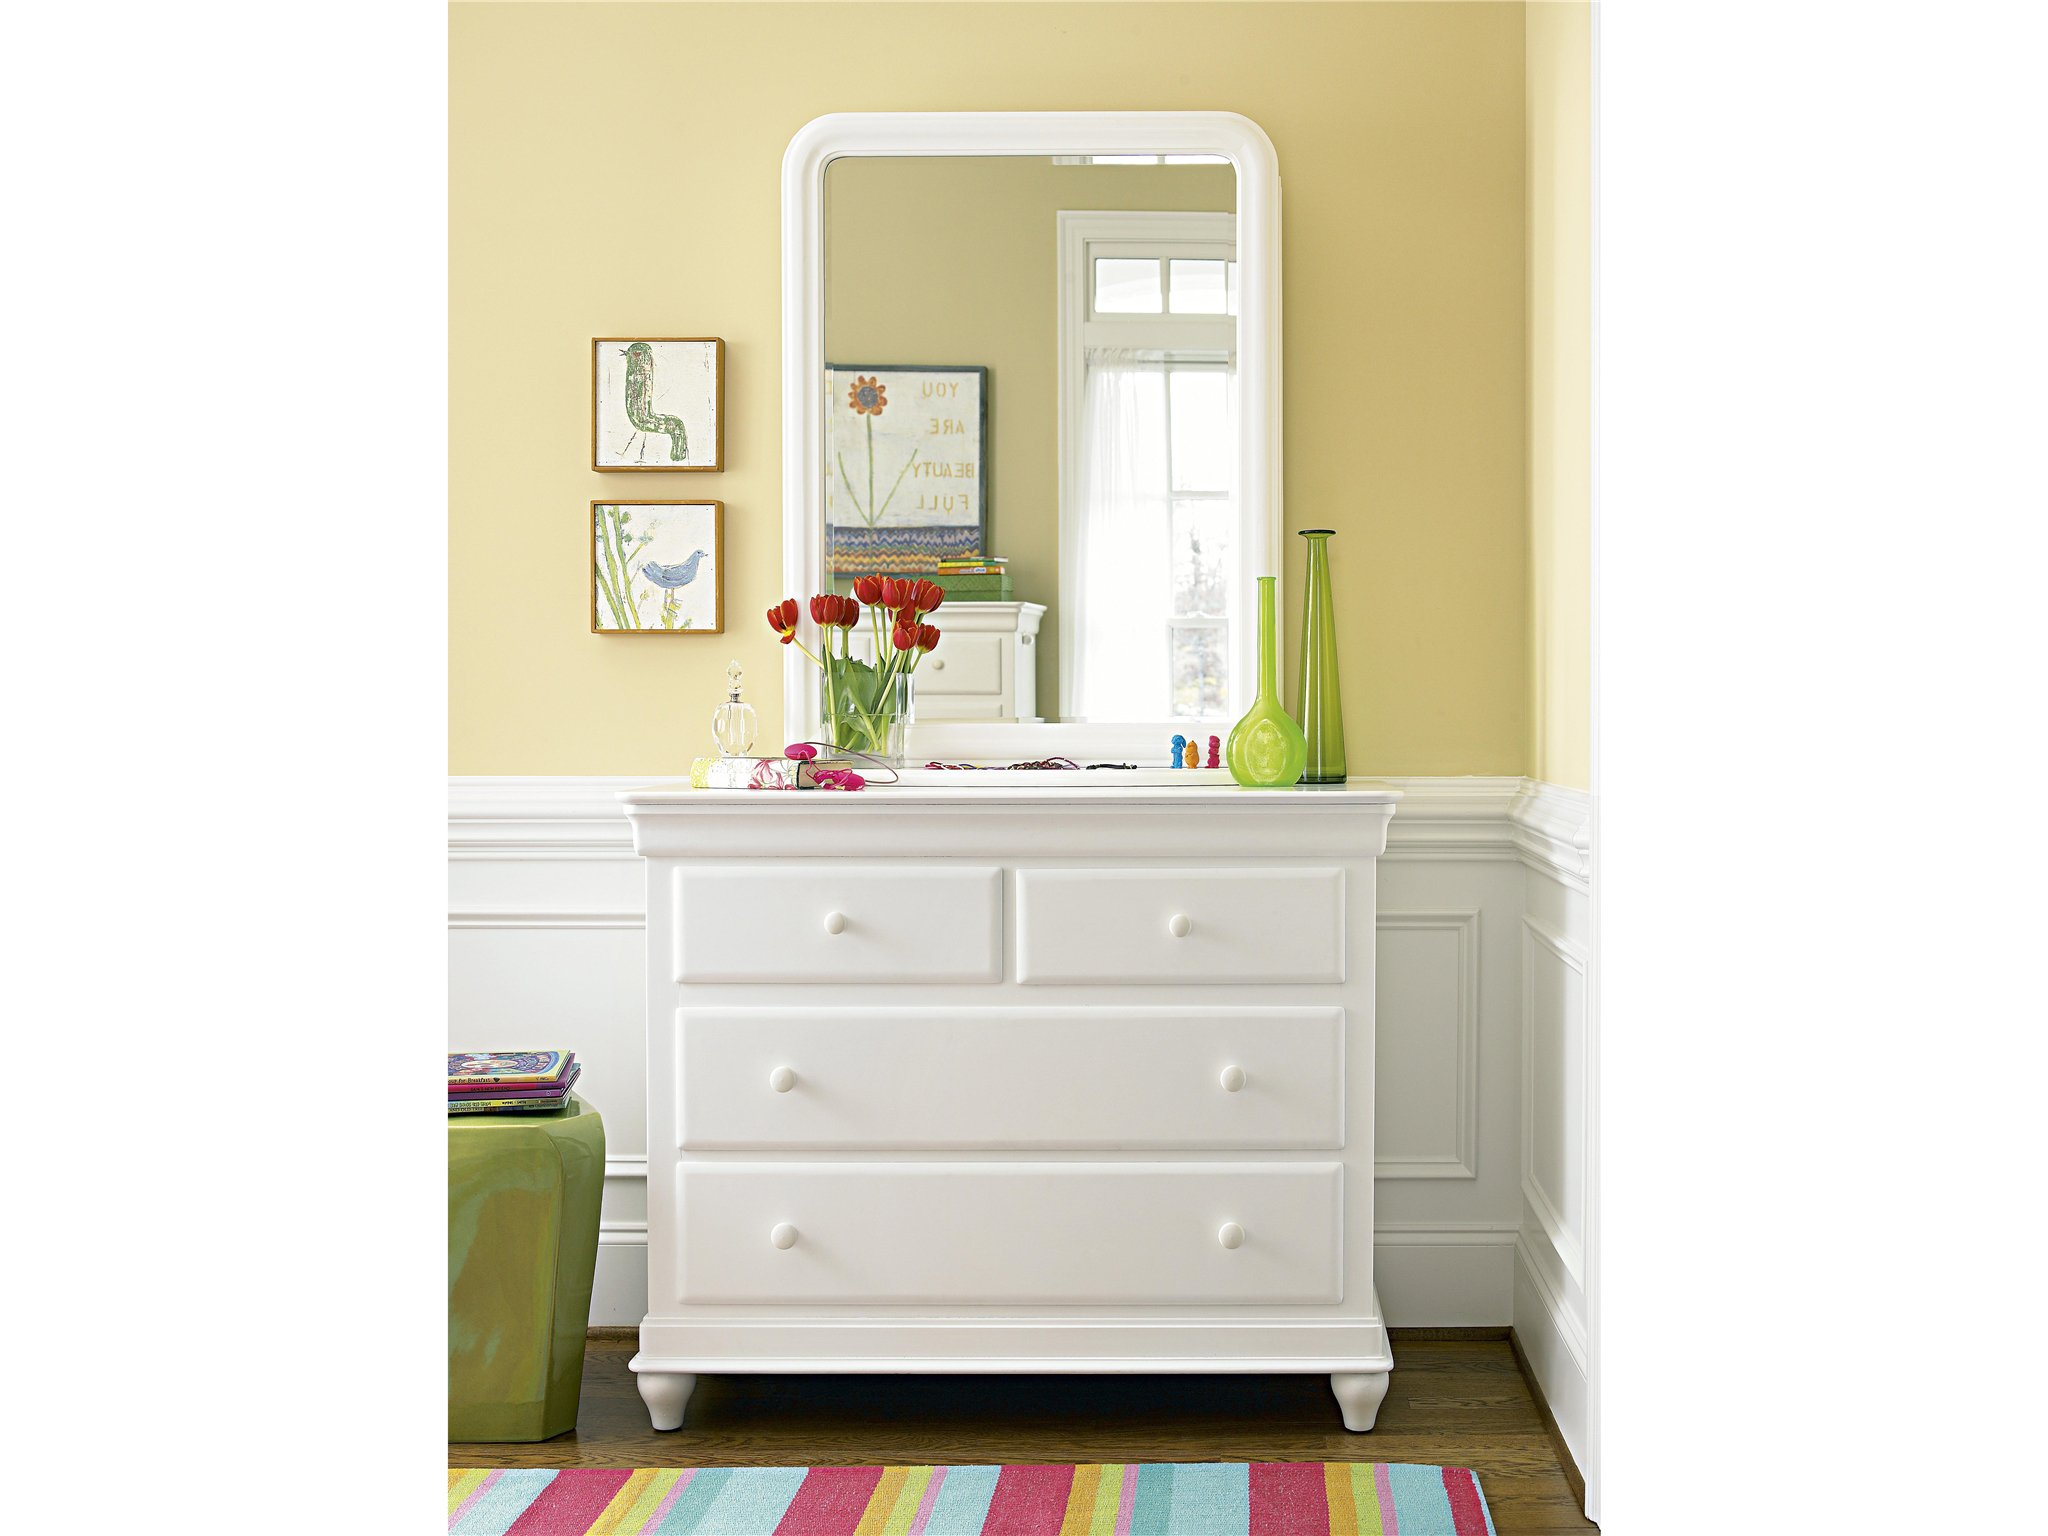 dresser single girls The clementine court dresser lets girls have it all stylishness and plenty of room  for  and antiqued finishes make the smiling hill single dresser an instant.